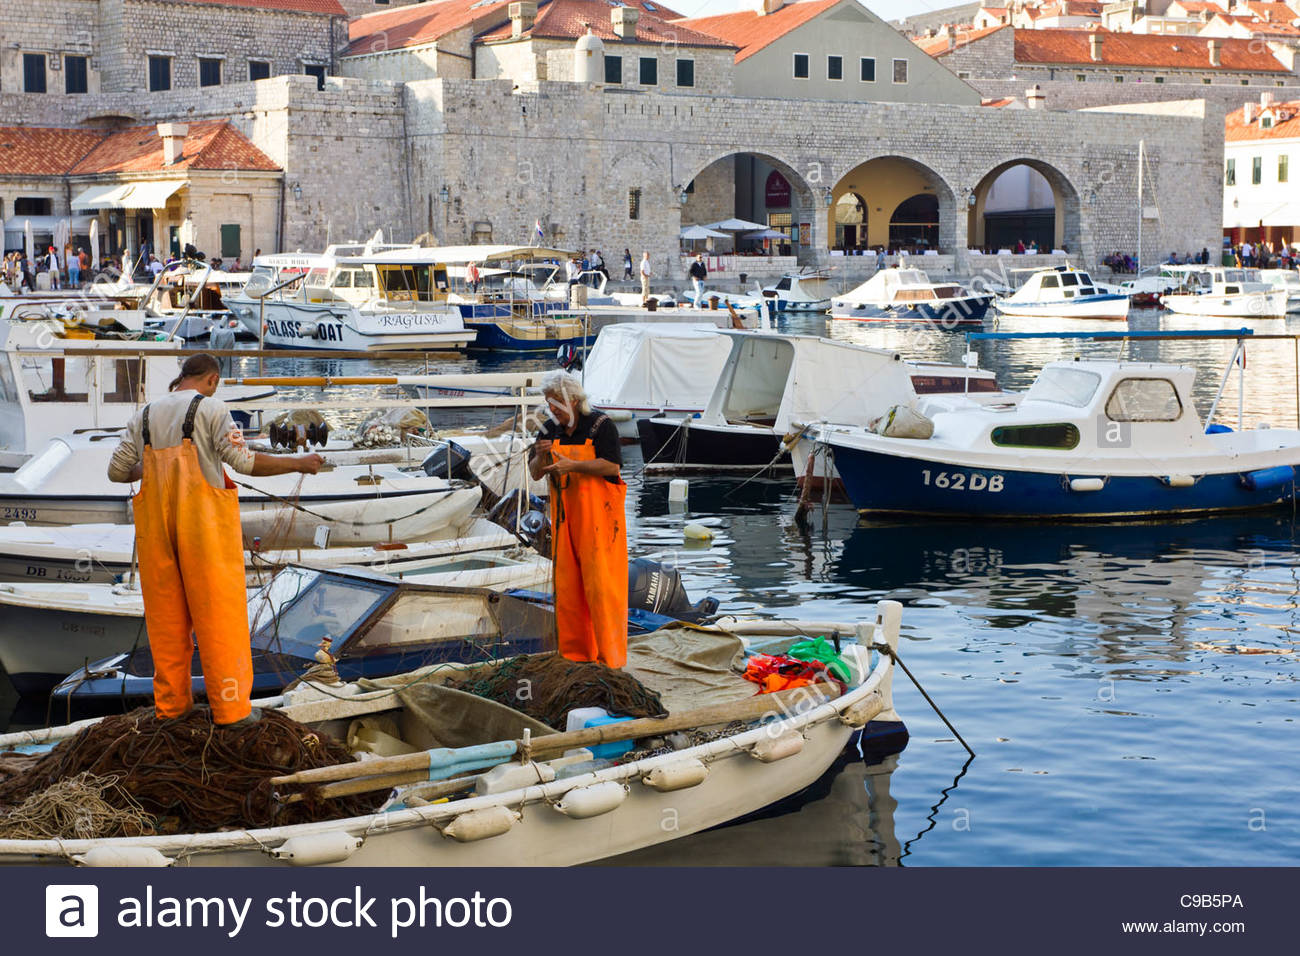 Fishermen preparing nets in the walled city old Dubrovnic, Croatia. Stock Photo